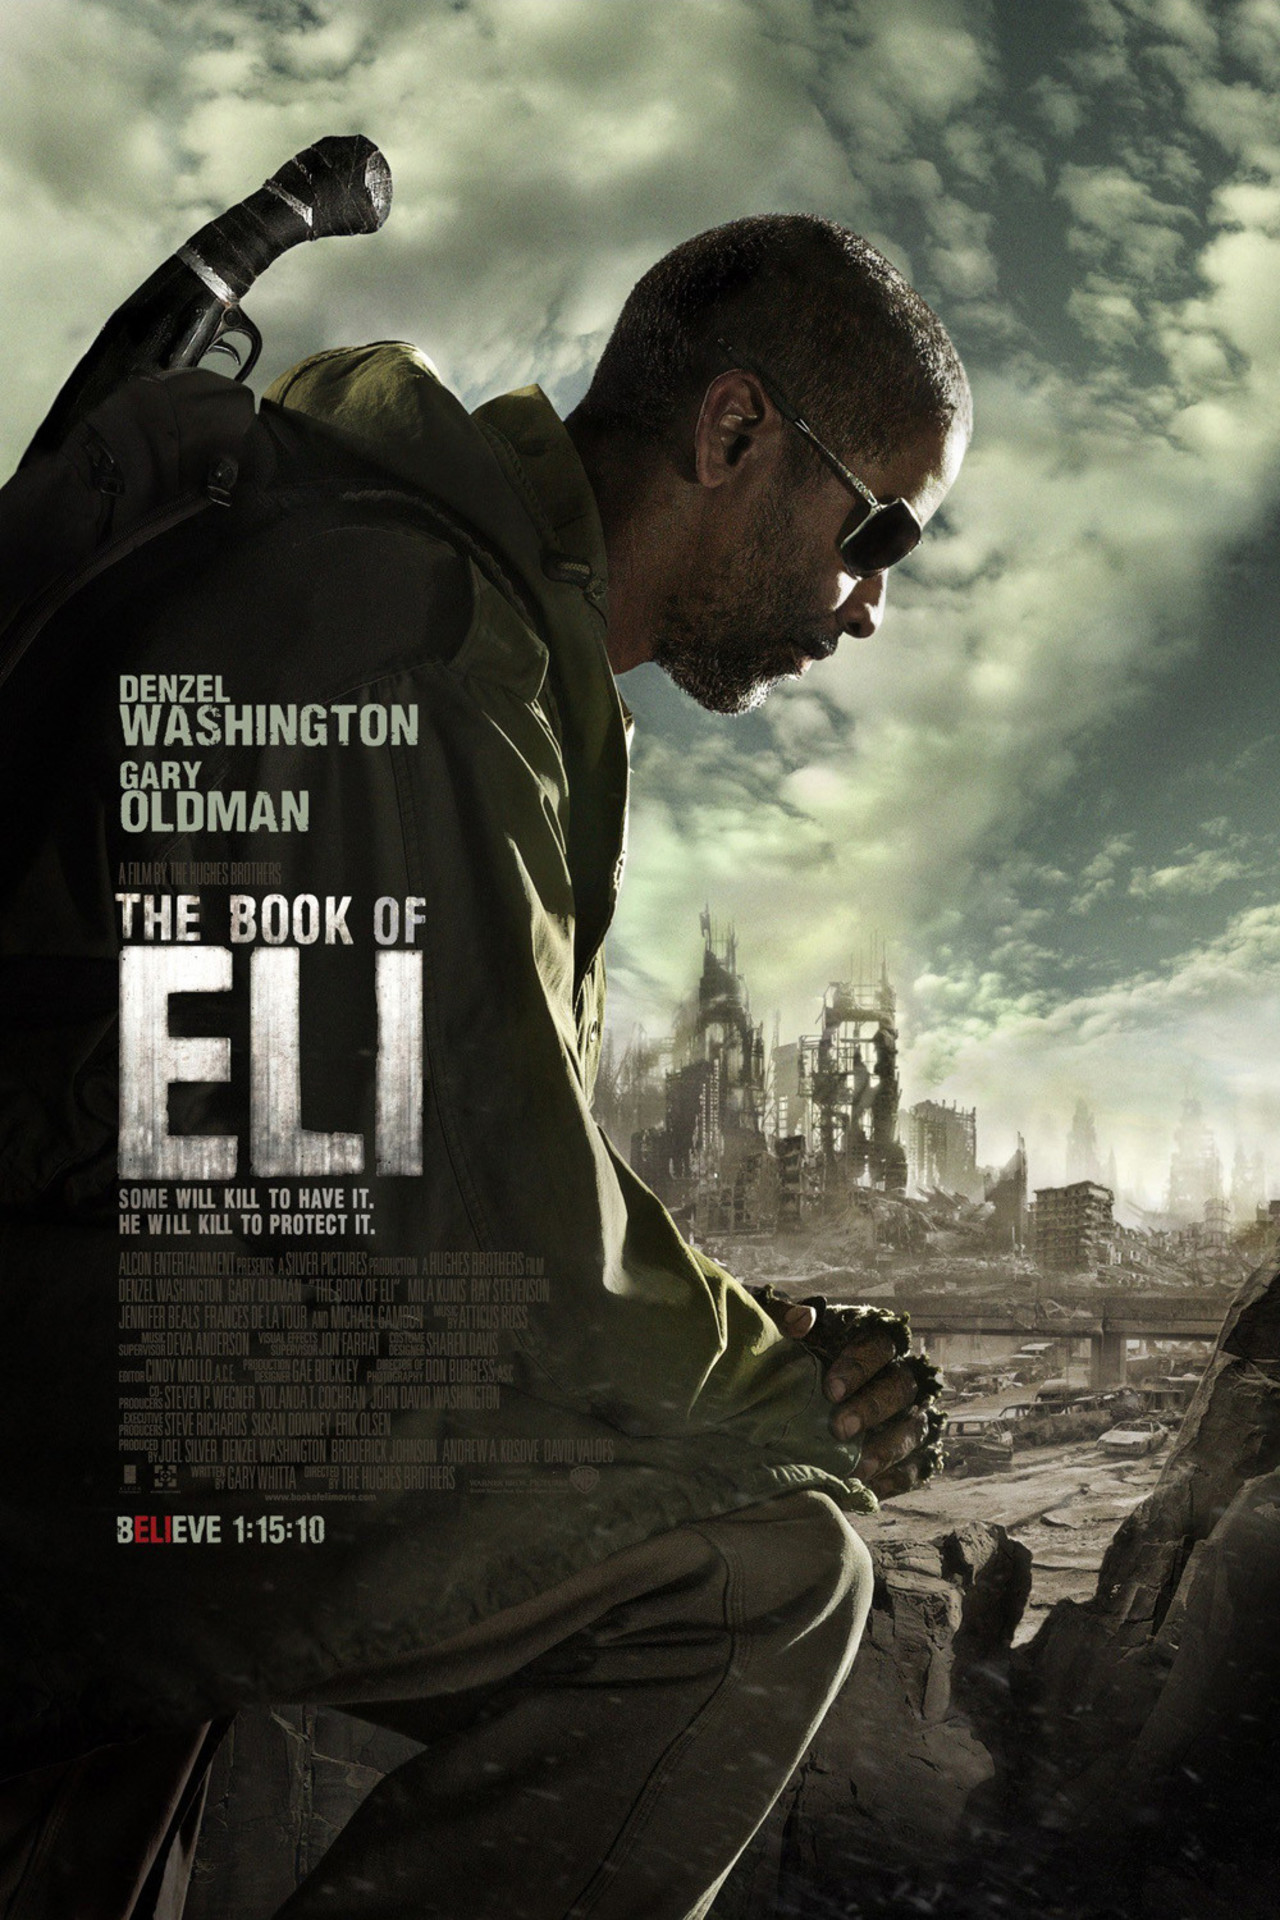 eli the arabic of book full movie subtitle